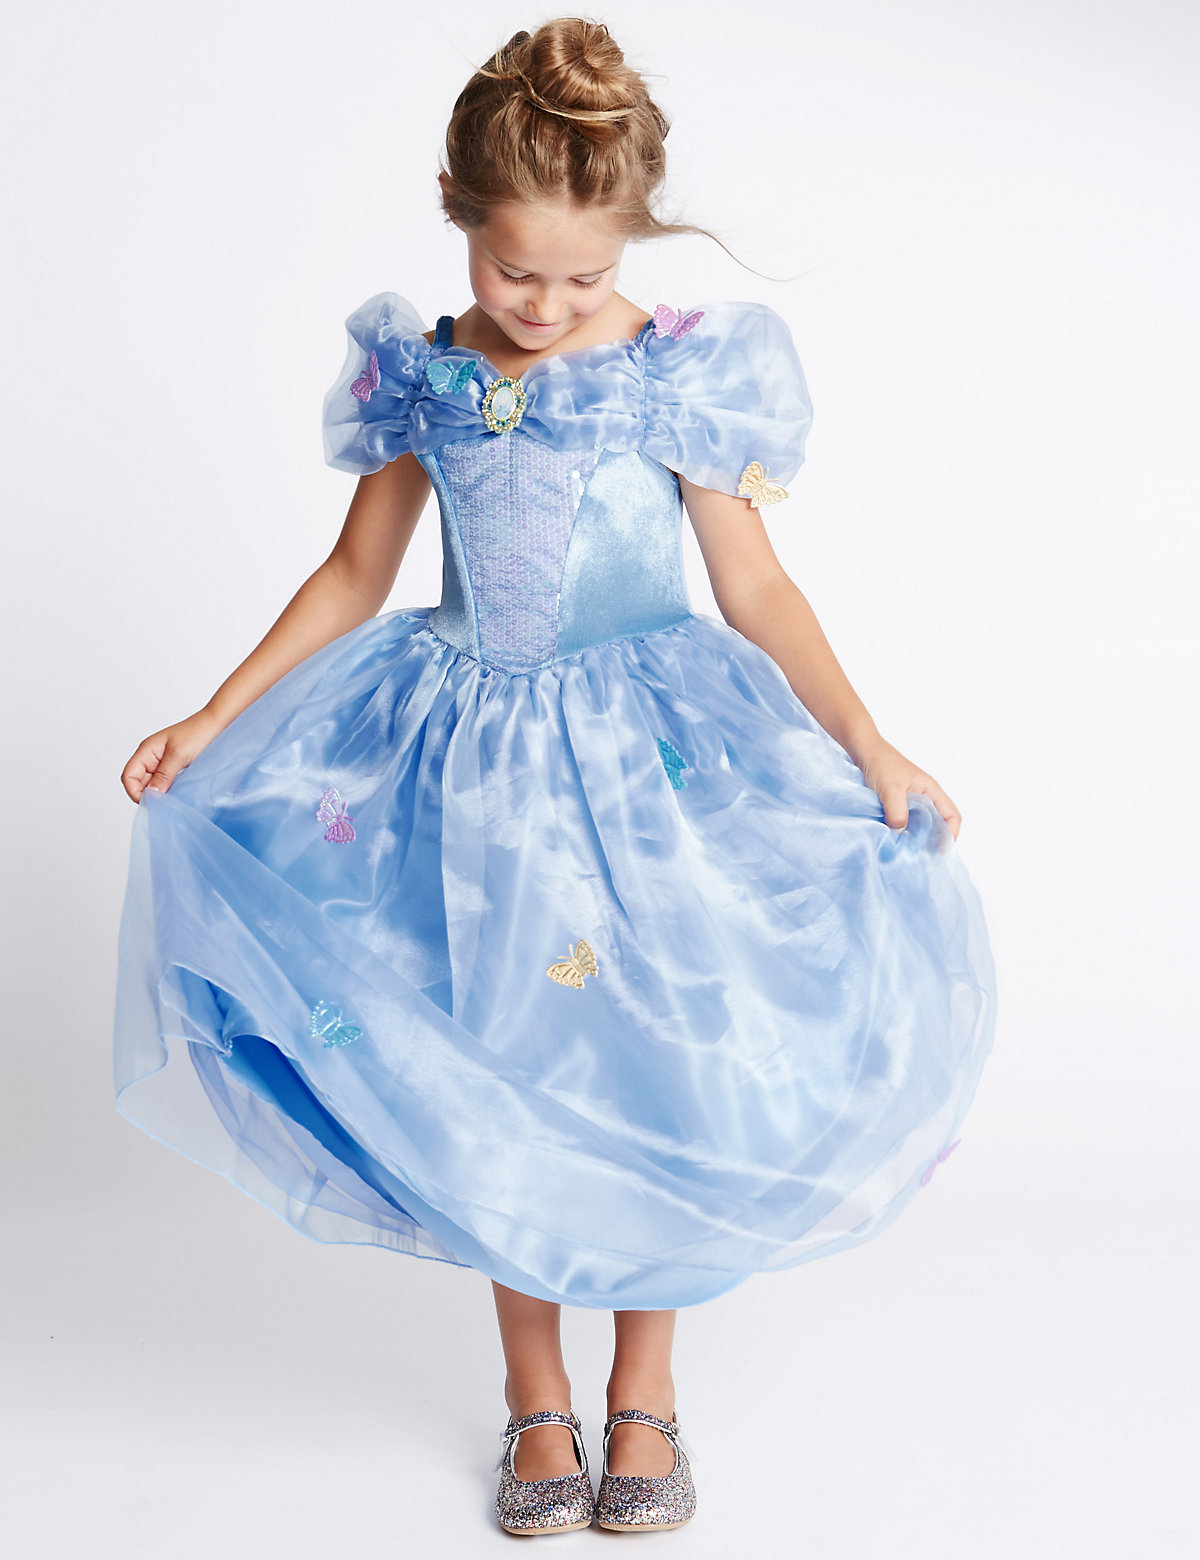 Cinderella dress | Shop for cheap Fancy Dress and Save online